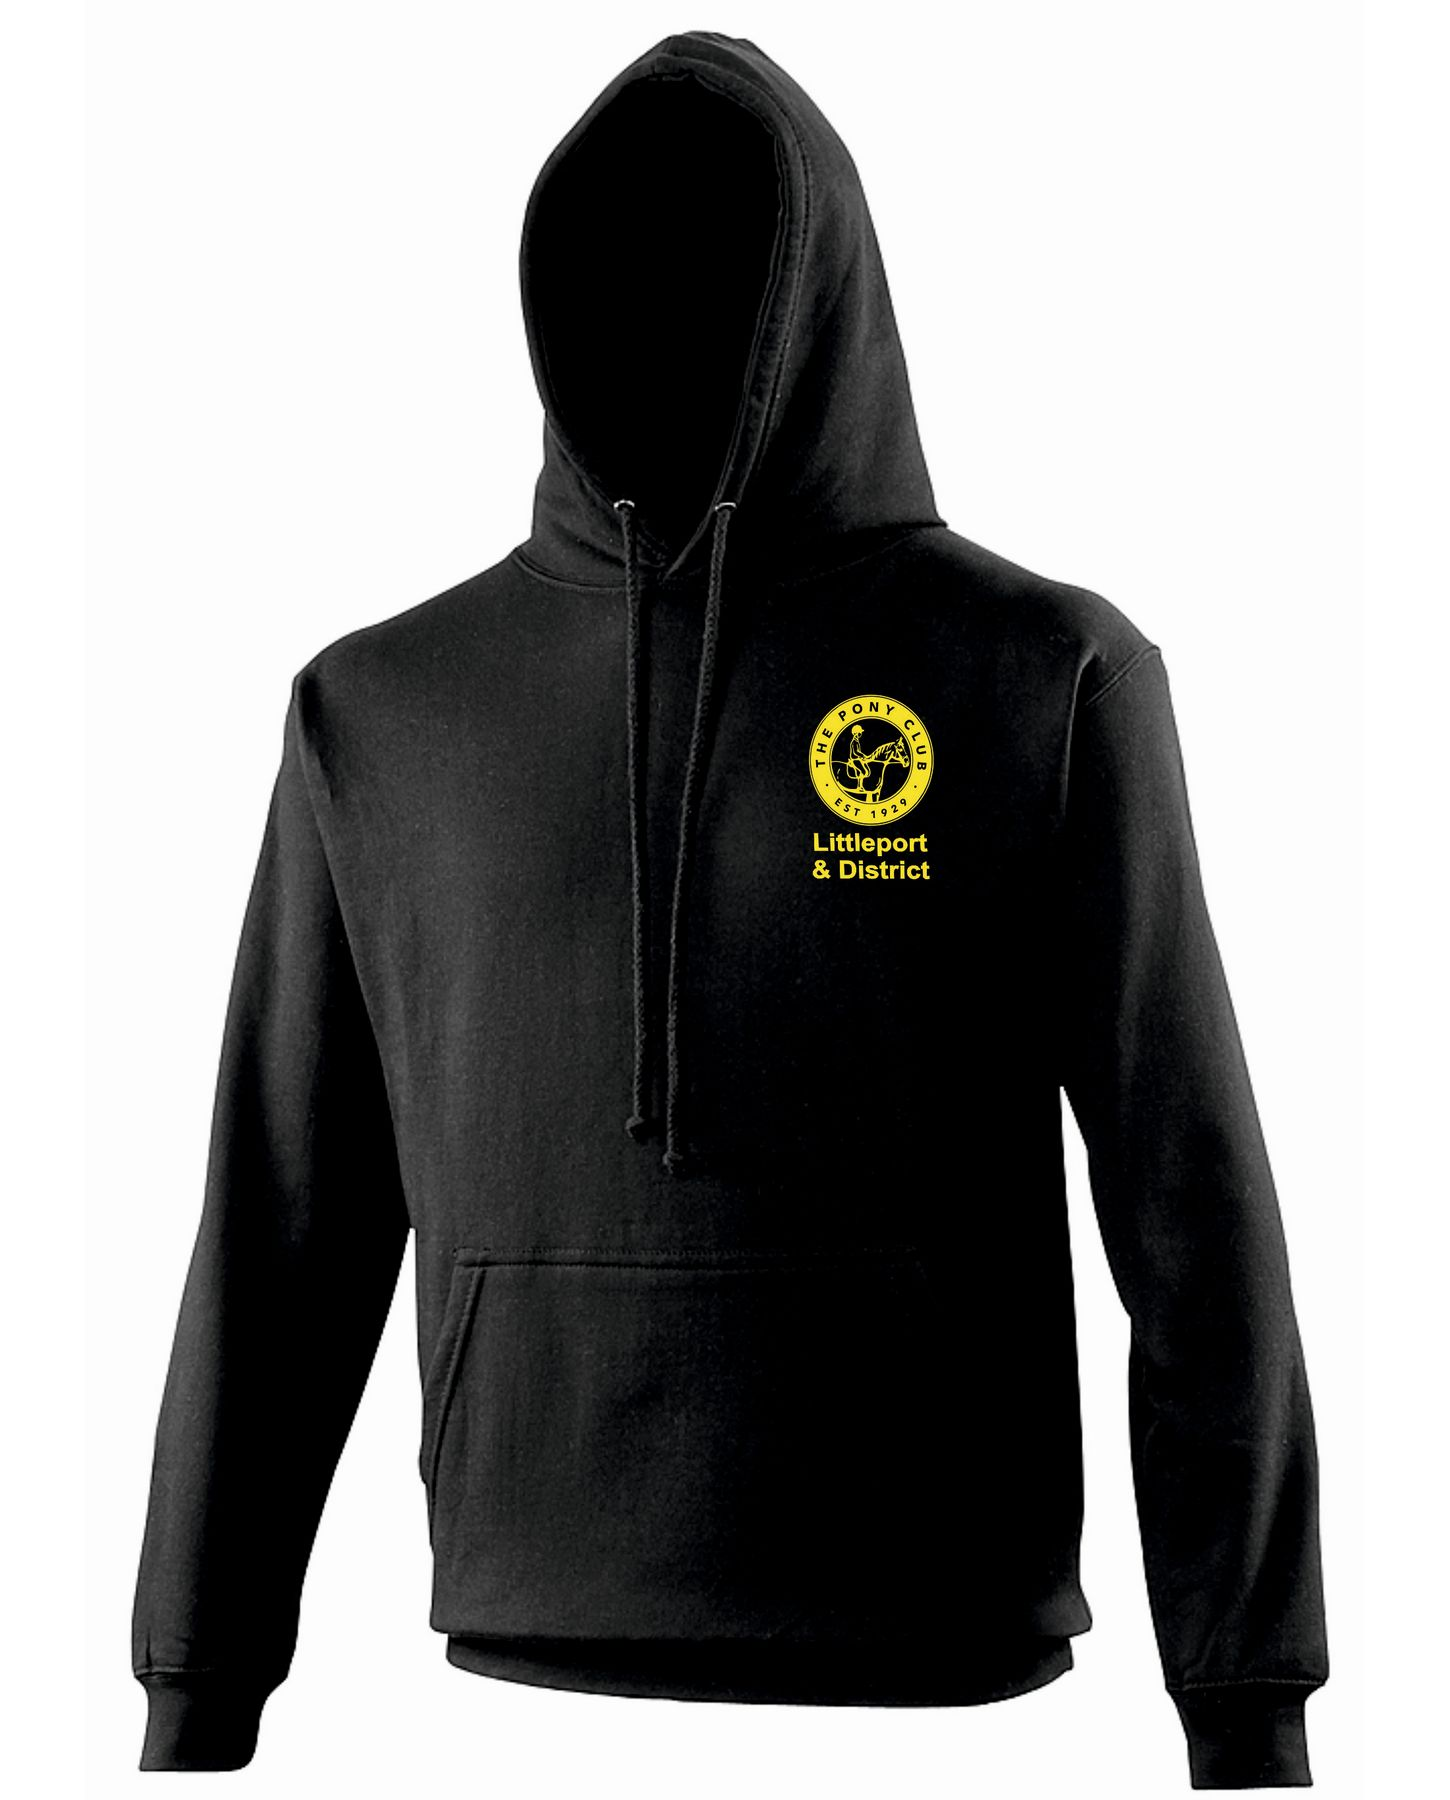 Littleport & District Pony Club – Hoodie Adults